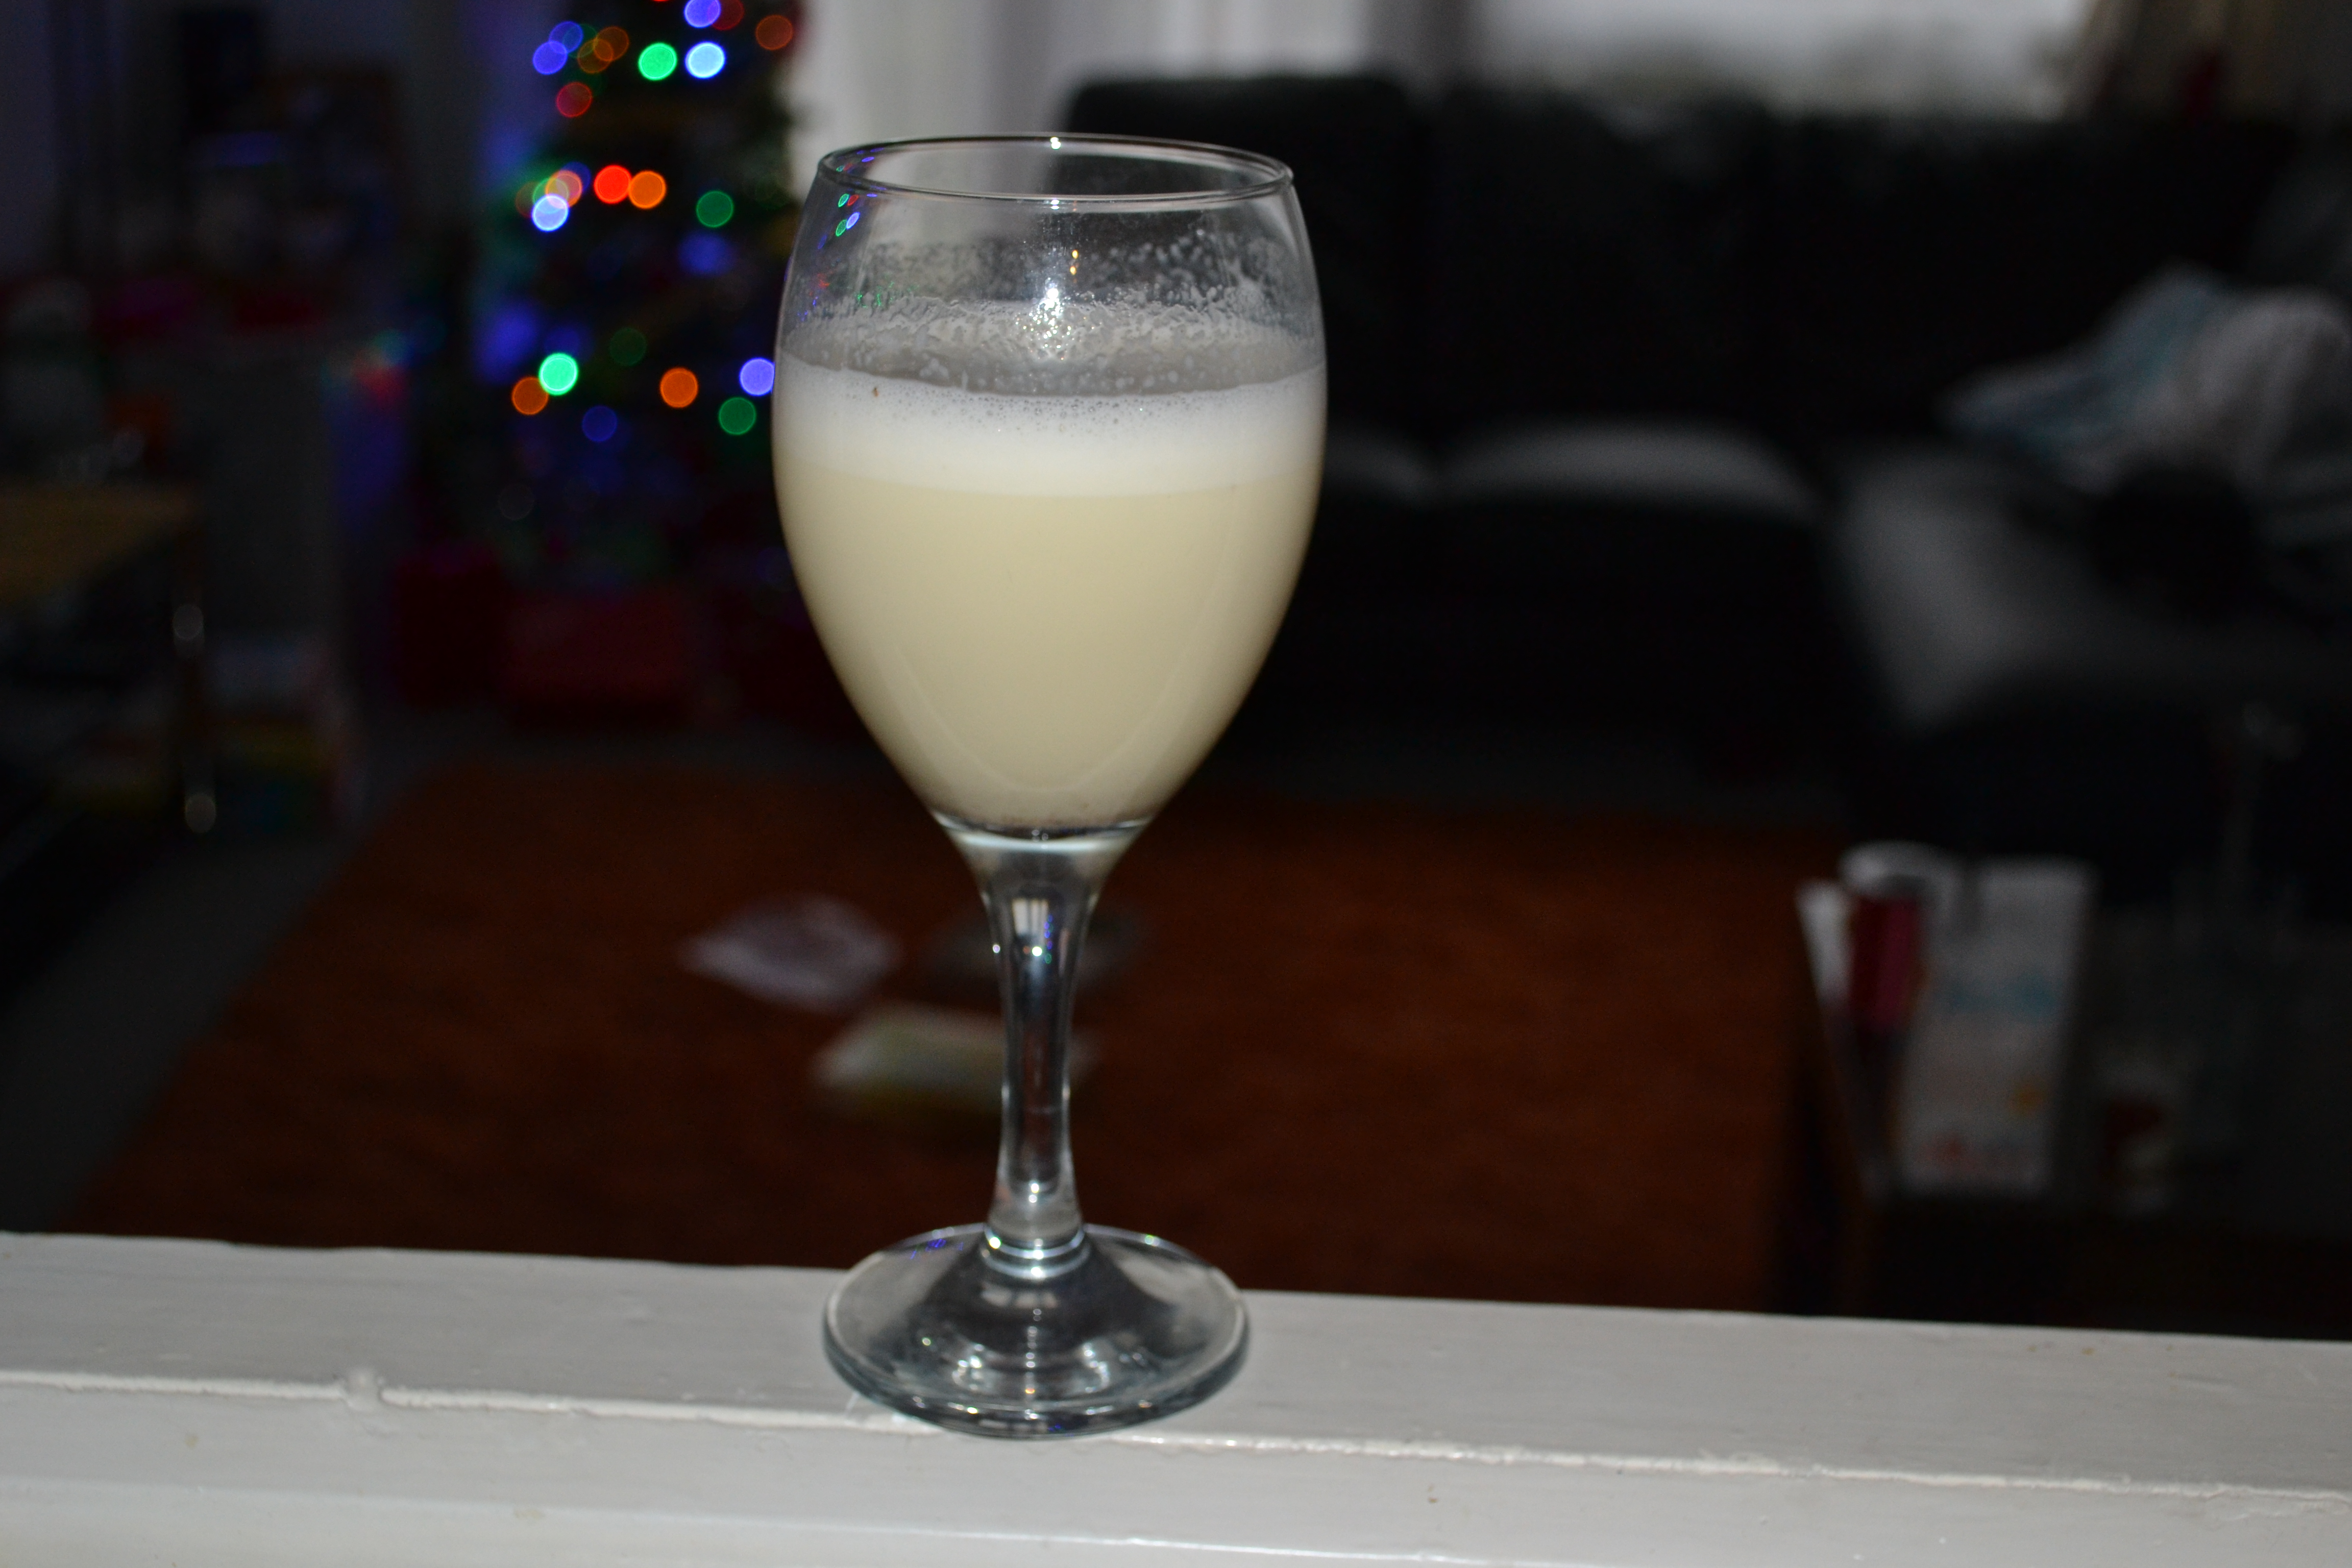 How To Make Creamy 1 Minute Eggnog - Kids/Adults Version